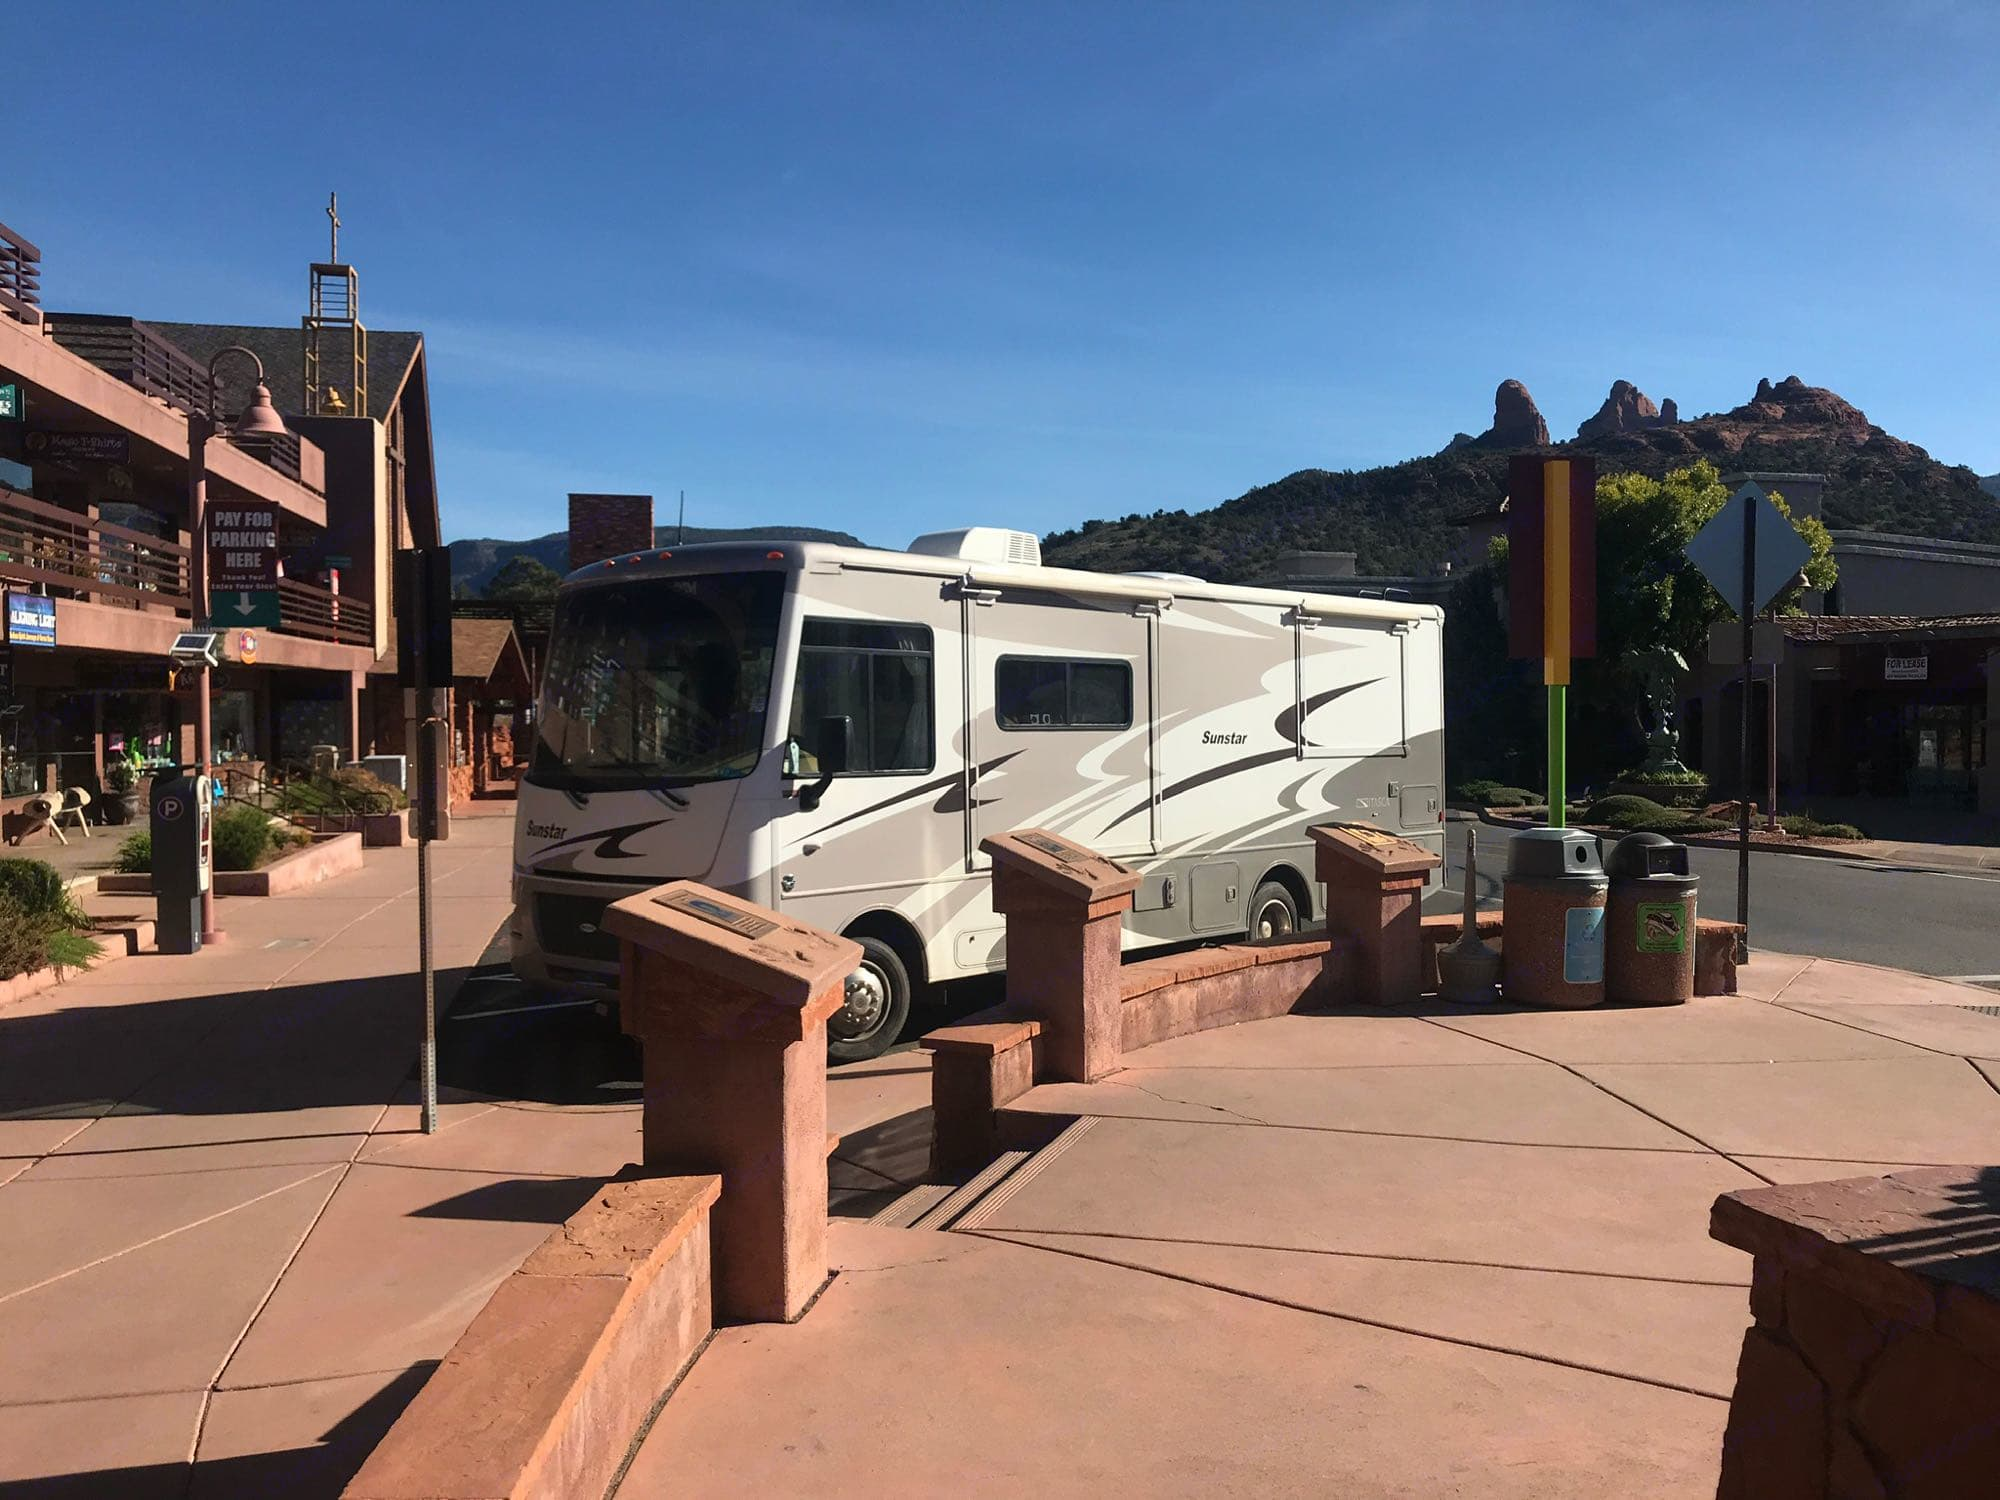 Not too big to park! Granted this was a large space in Sedona, but this rig is pretty manageable and easy to navigate.. Itasca Sunstar 2013